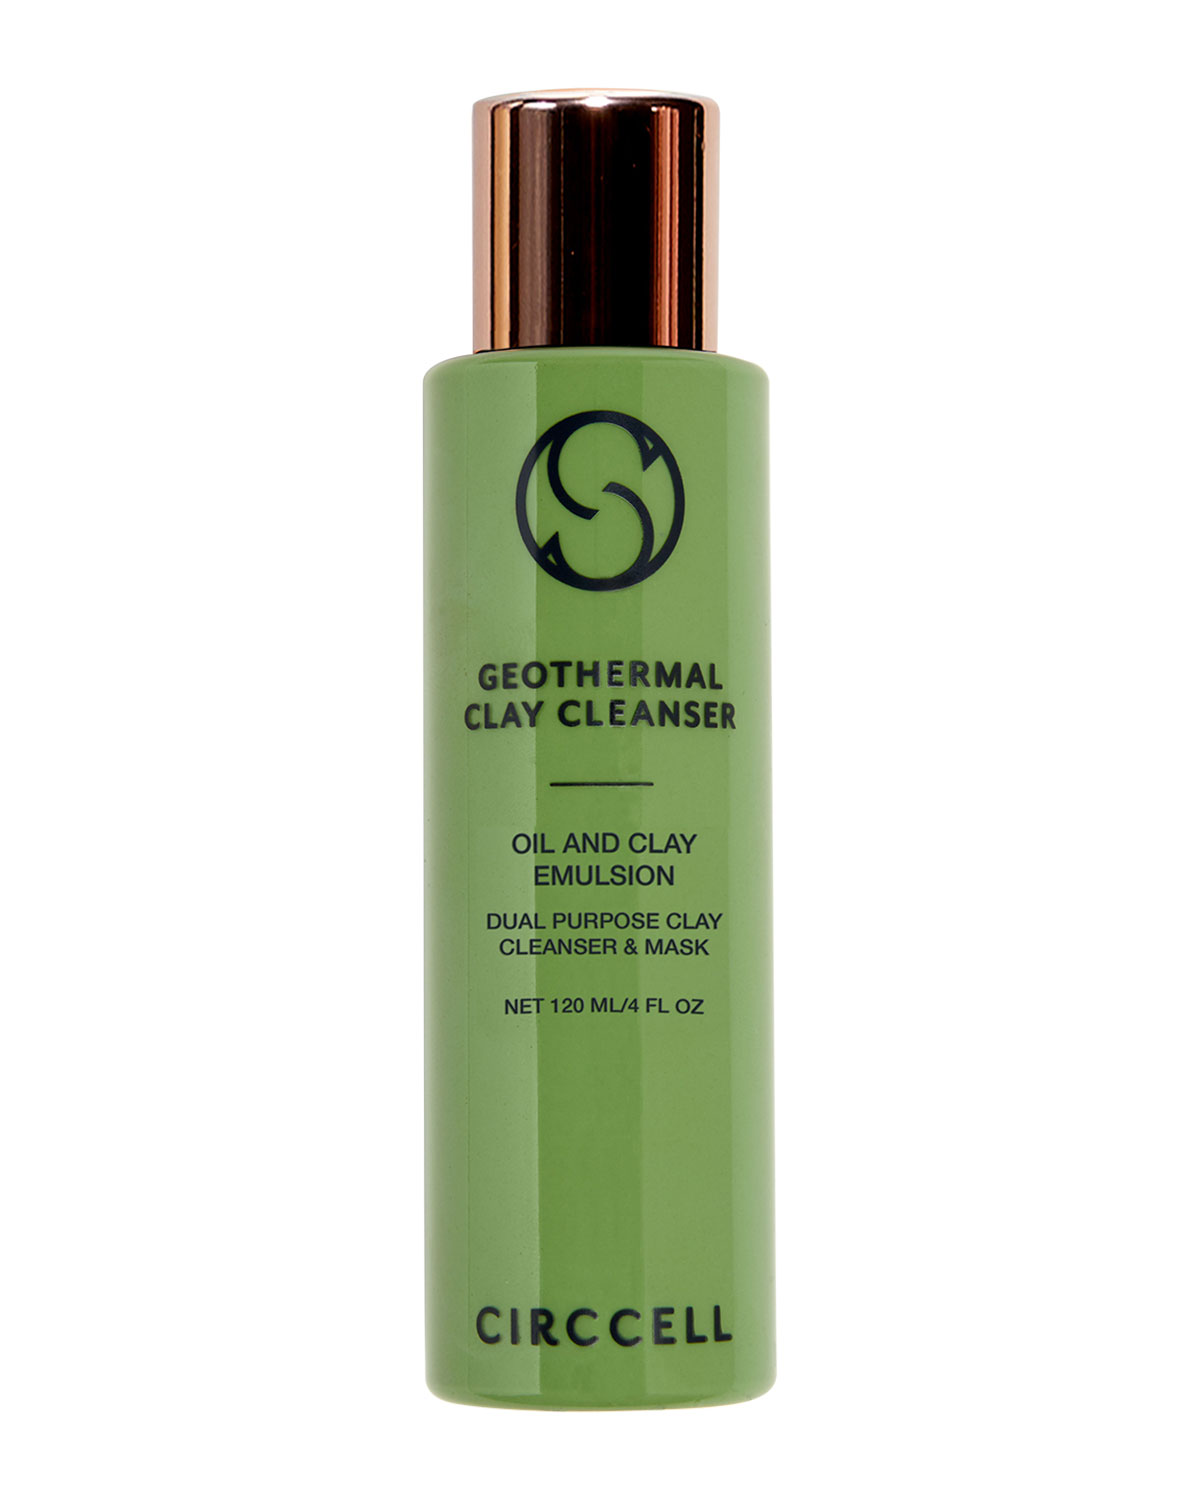 4 oz. Geothermal Clay Cleanser